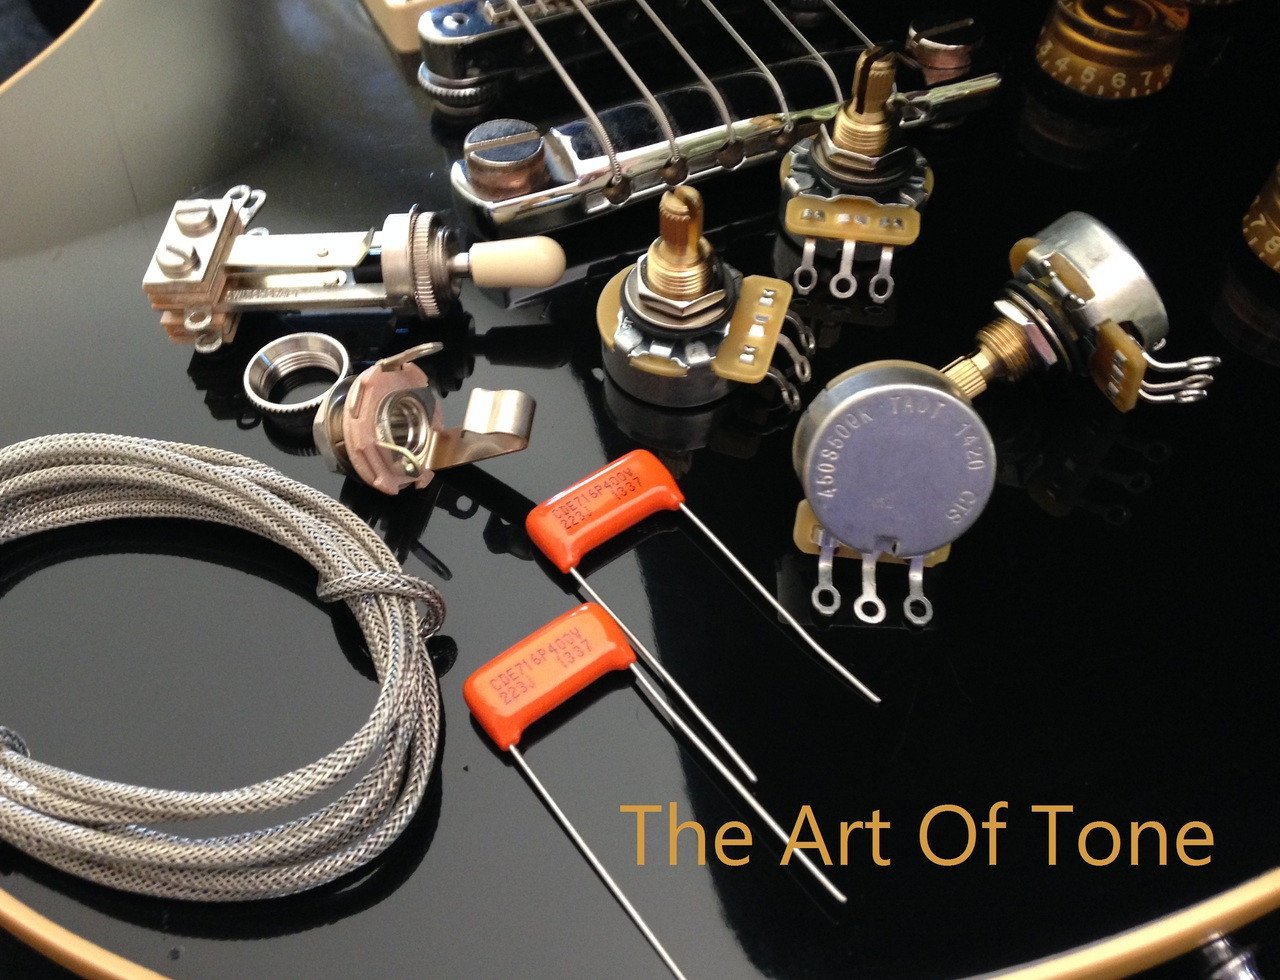 taot gibson les paul wiring kit short shaft orange drop caps the art of [ 1280 x 980 Pixel ]